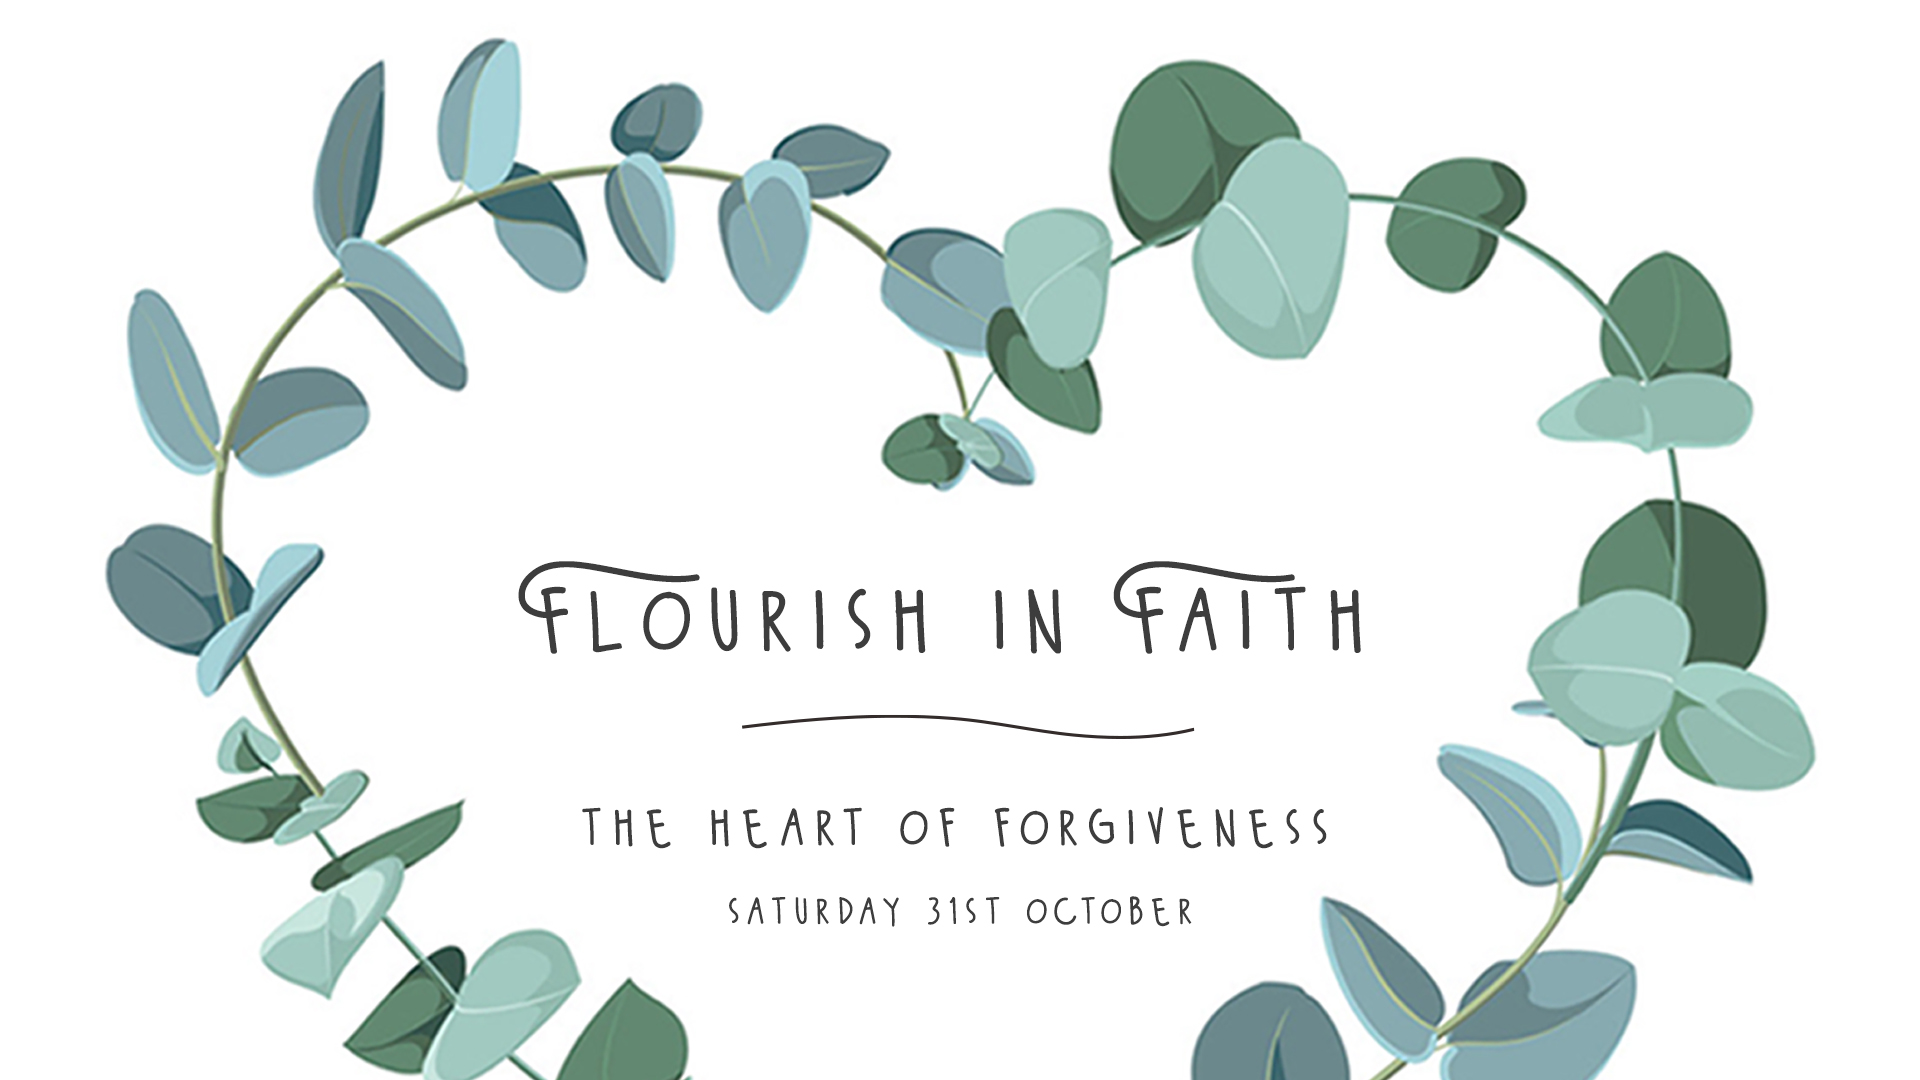 Flourish in Faith: The Heart of Forgiveness